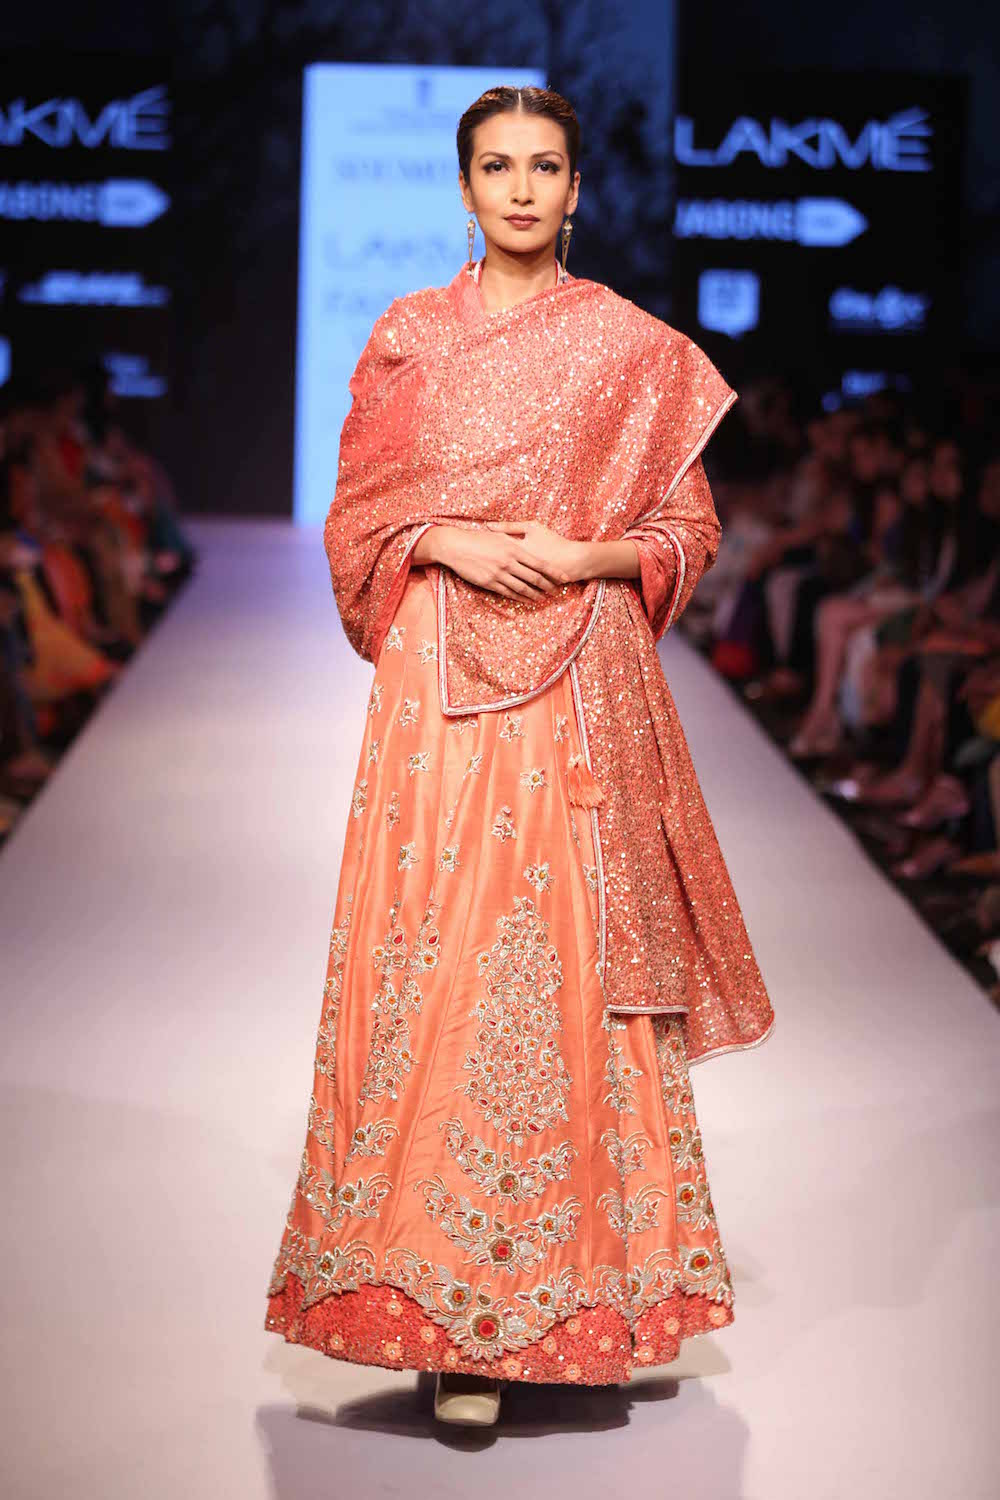 The Best Lehengas At Lakme Fashion Week S R 2015